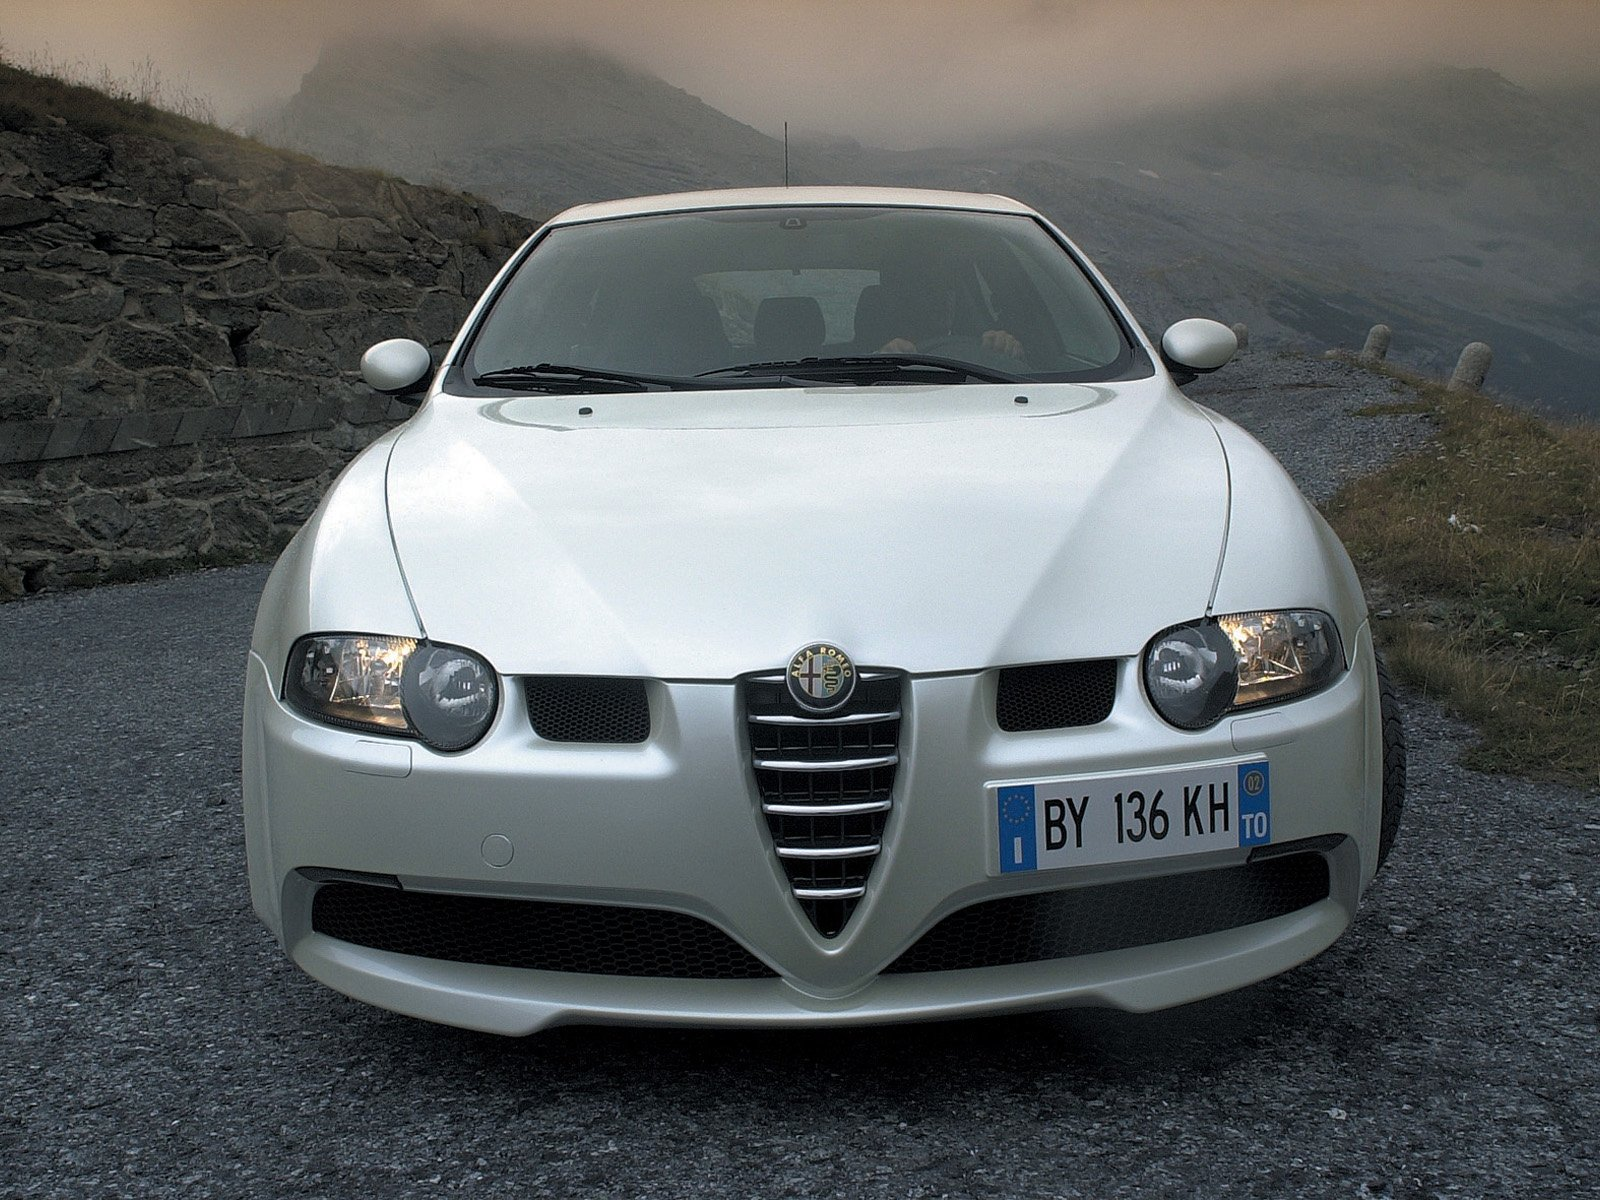 alfa romeo 147 gta car review features specification prices. Black Bedroom Furniture Sets. Home Design Ideas